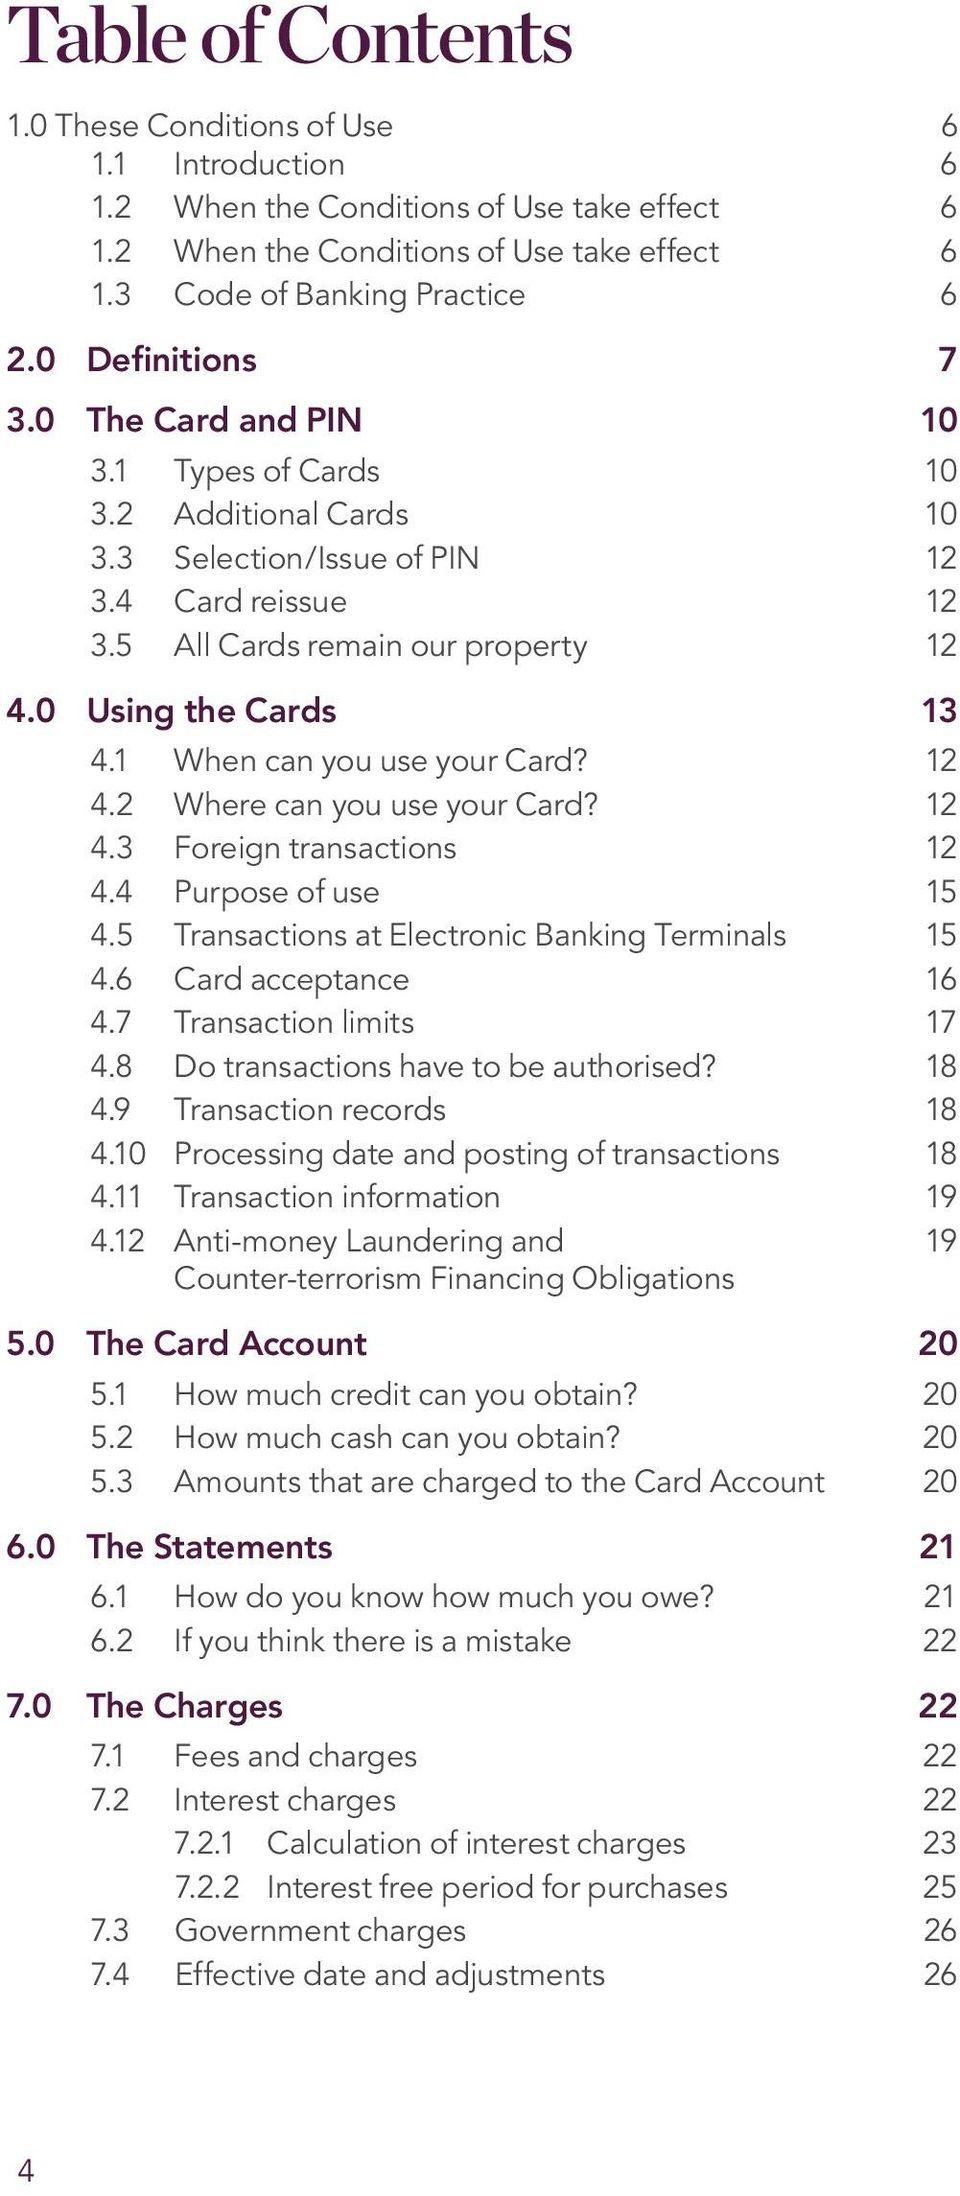 1 When can you use your Card? 12 4.2 Where can you use your Card? 12 4.3 Foreign transactions 12 4.4 Purpose of use 15 4.5 Transactions at Electronic Banking Terminals 15 4.6 Card acceptance 16 4.